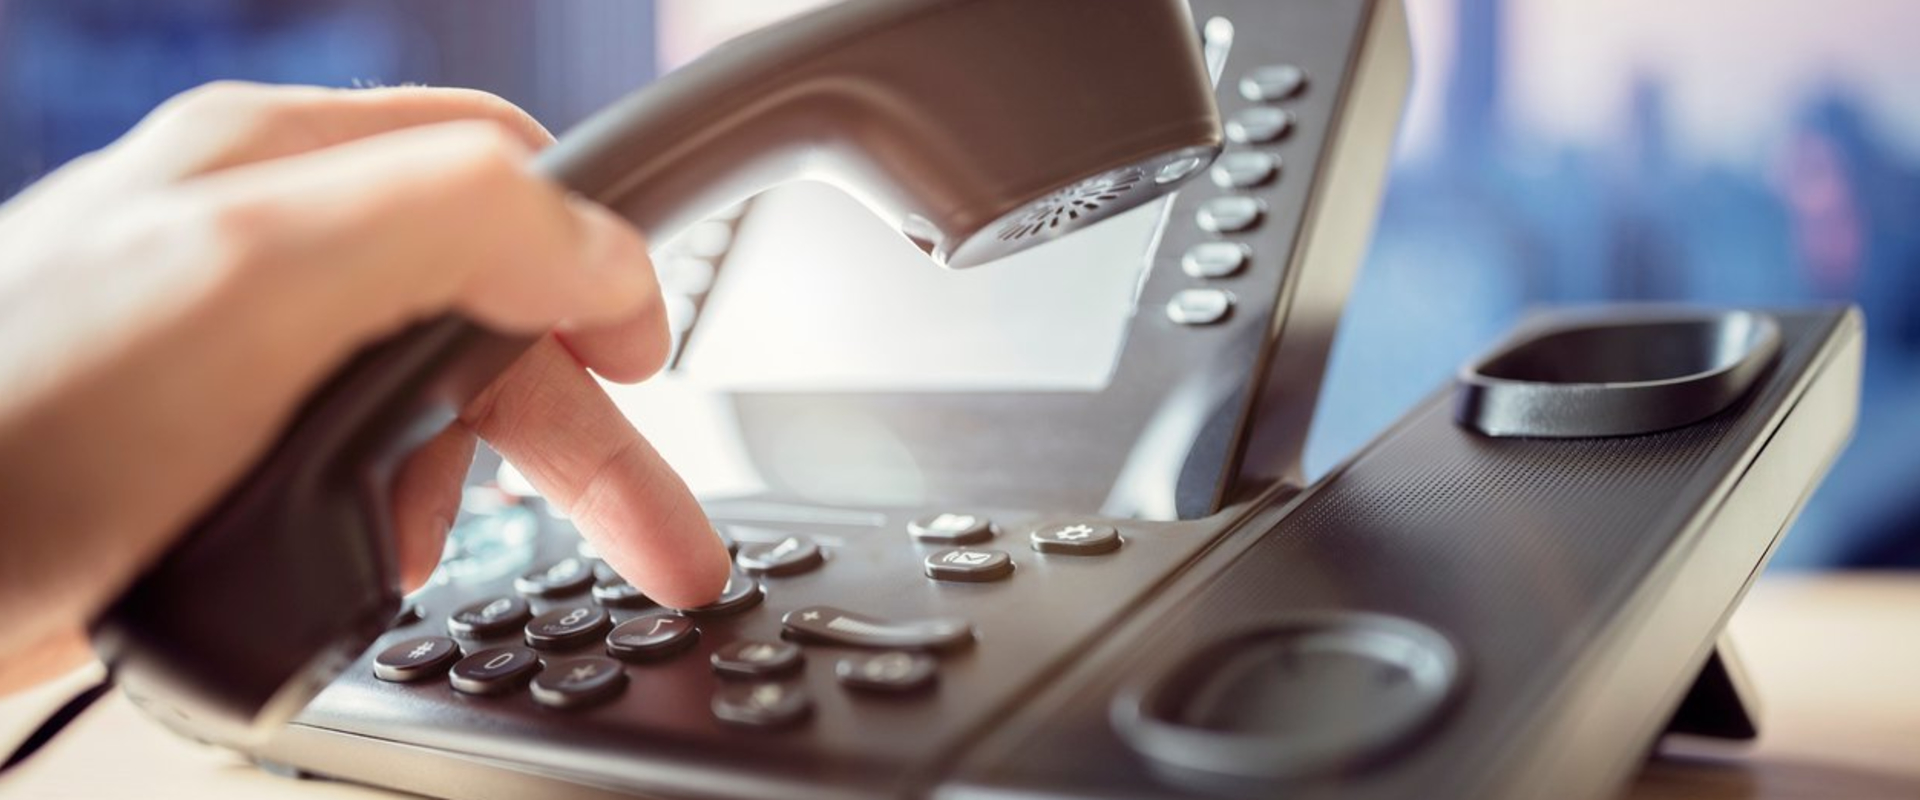 what is voip and how does voip phone service work?